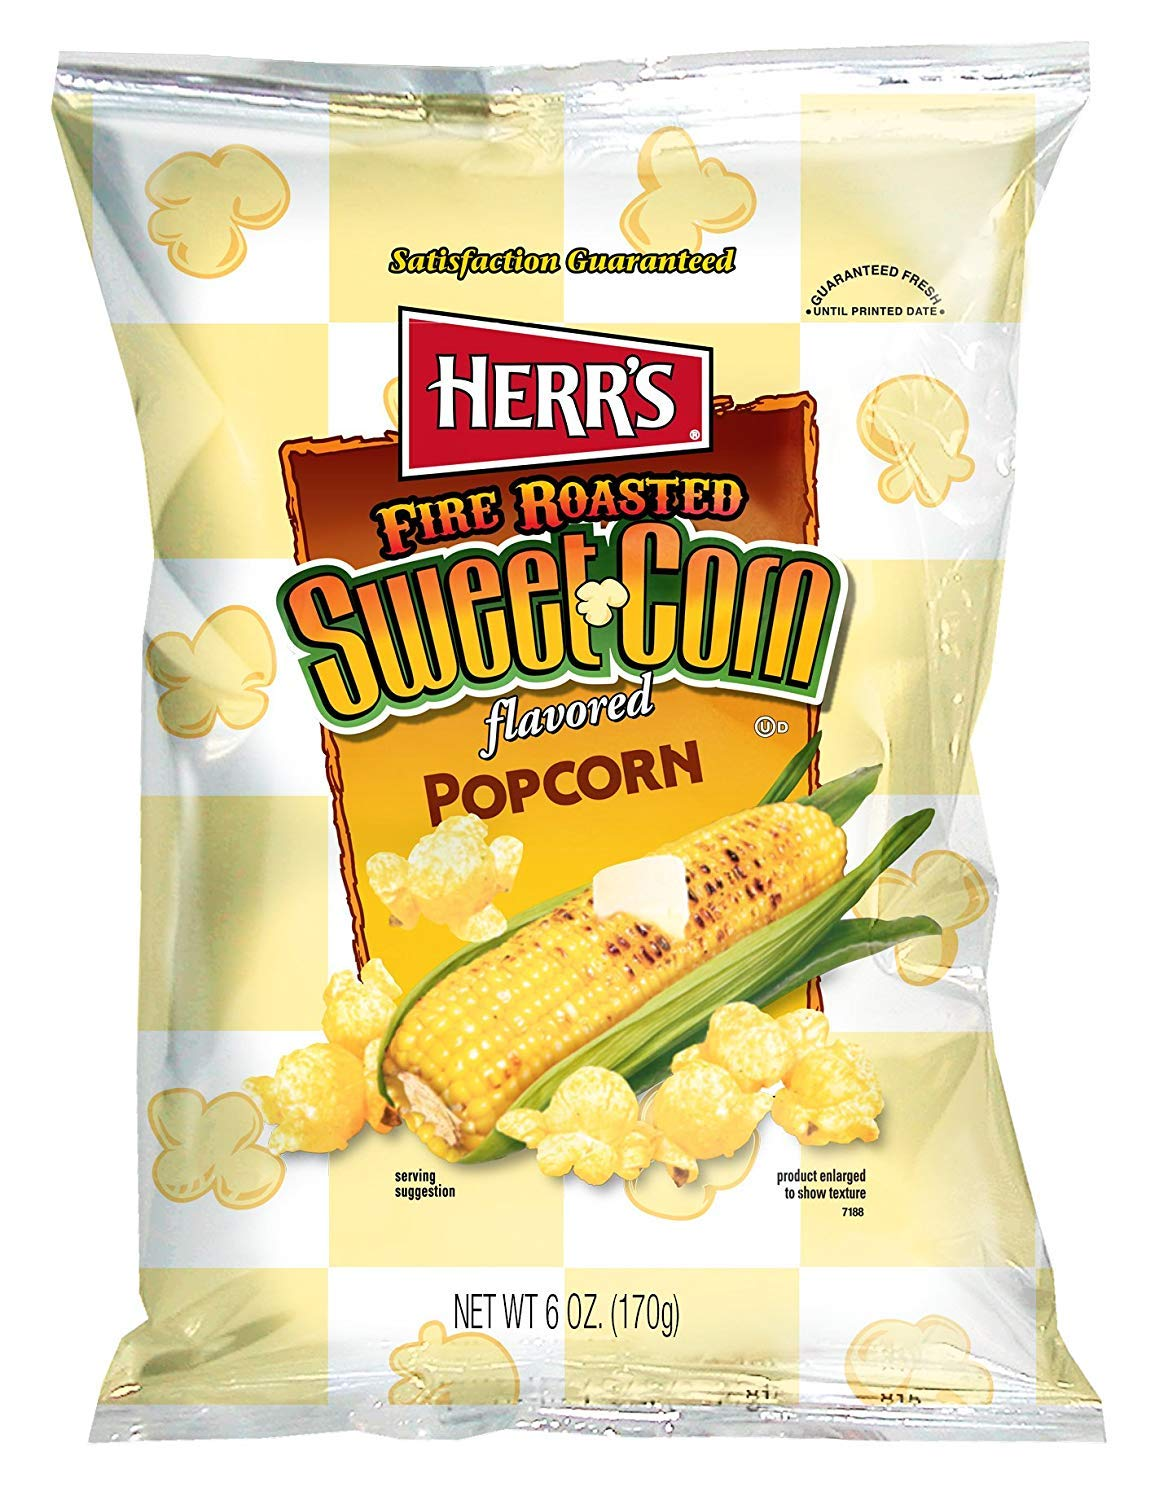 Herr's Fire Roasted Sweet Corn Popcorn, 6 Ounce (Pack of 9) (3 Pack (Pack of 9)) by Herr's